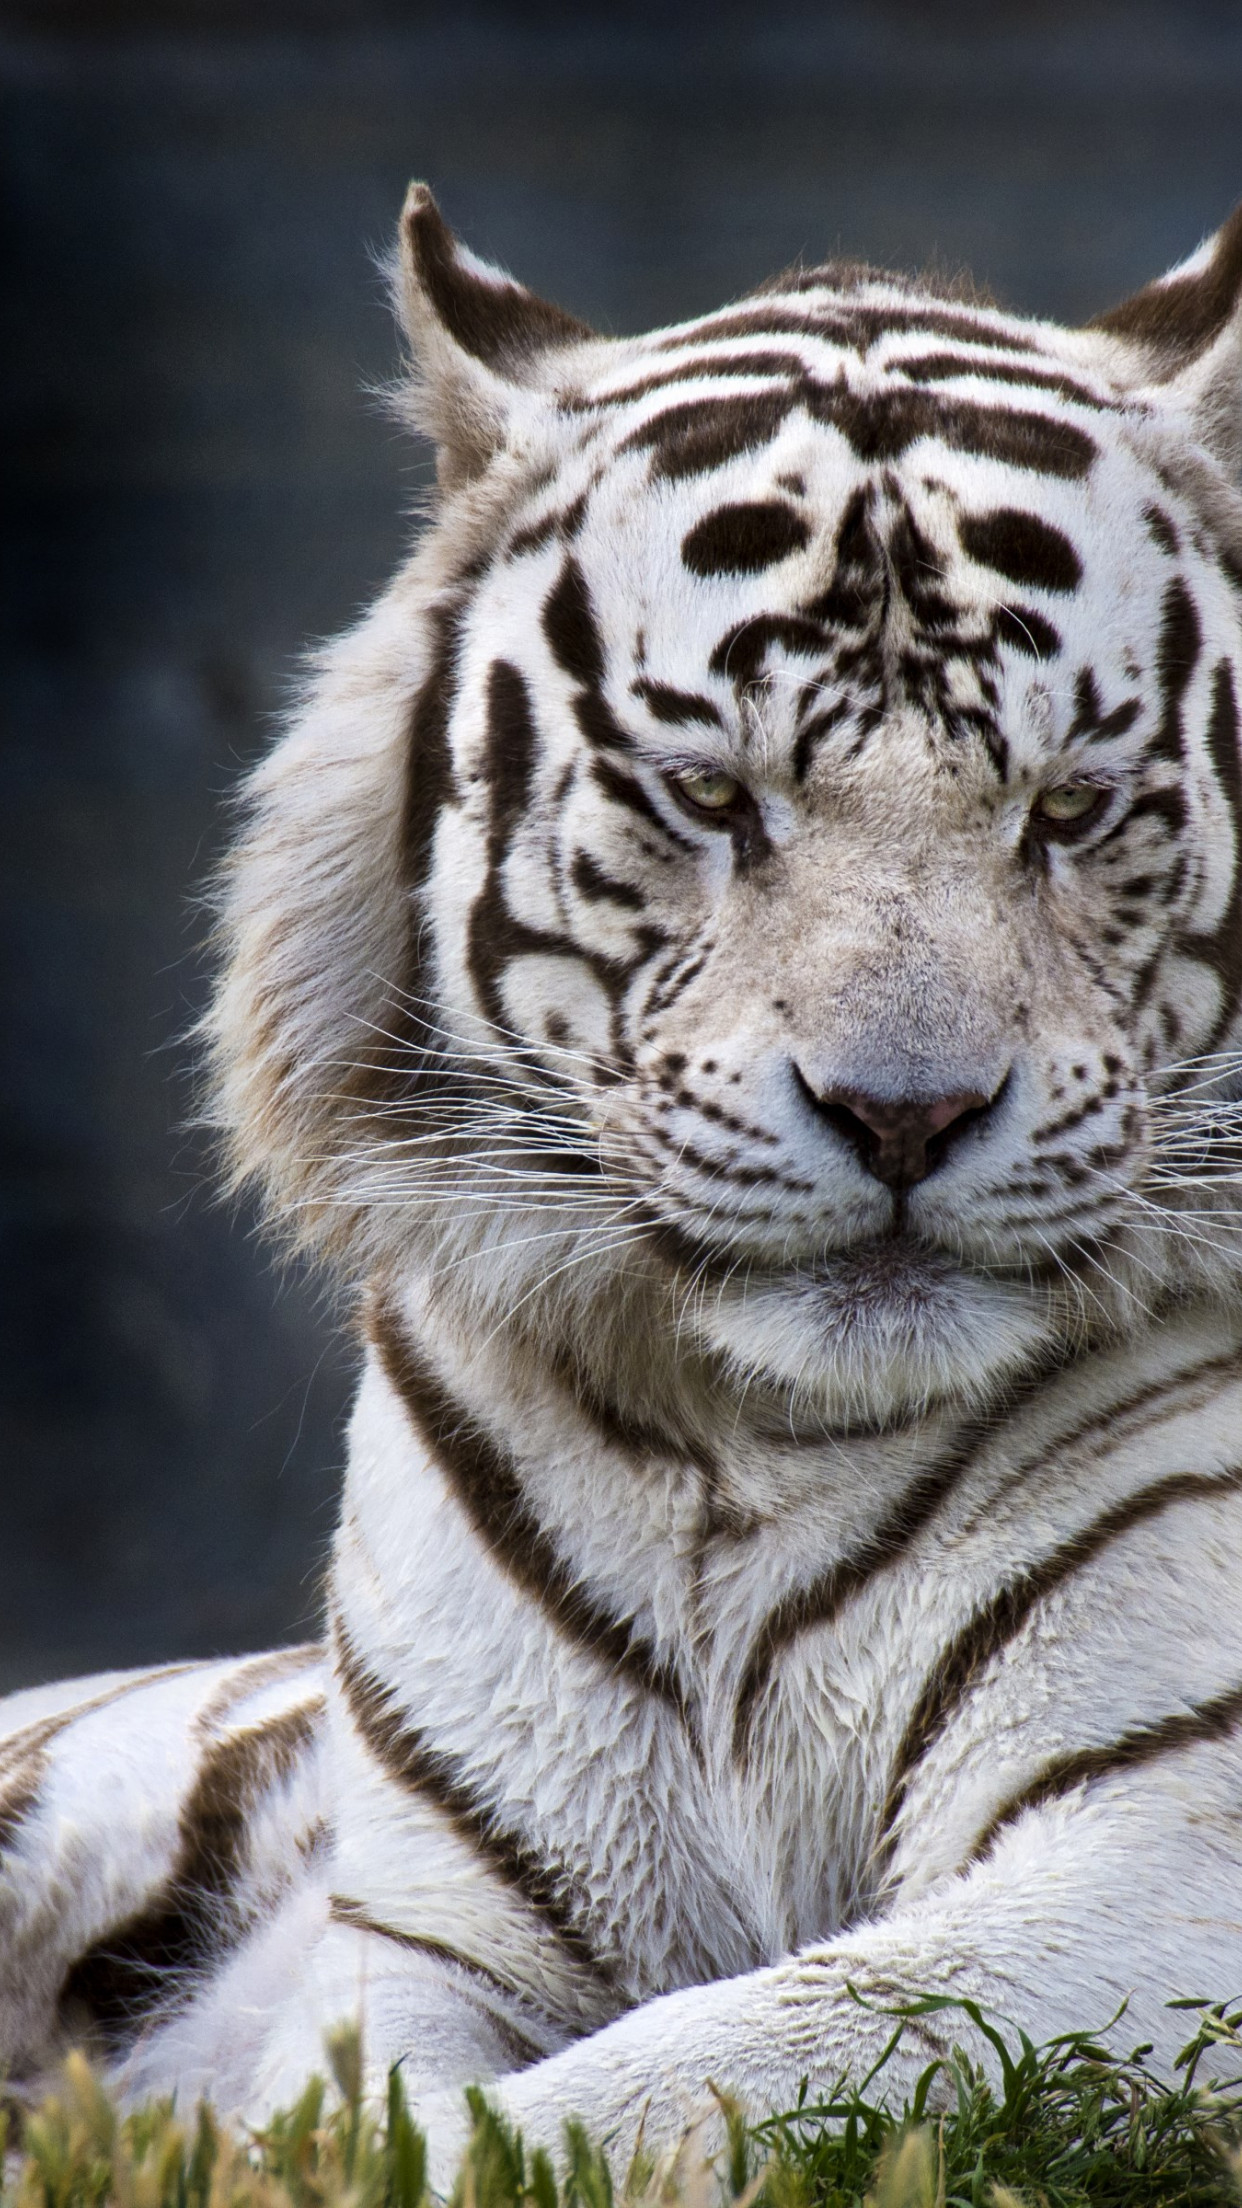 The white tiger from Madrid Zoo | 1242x2208 wallpaper